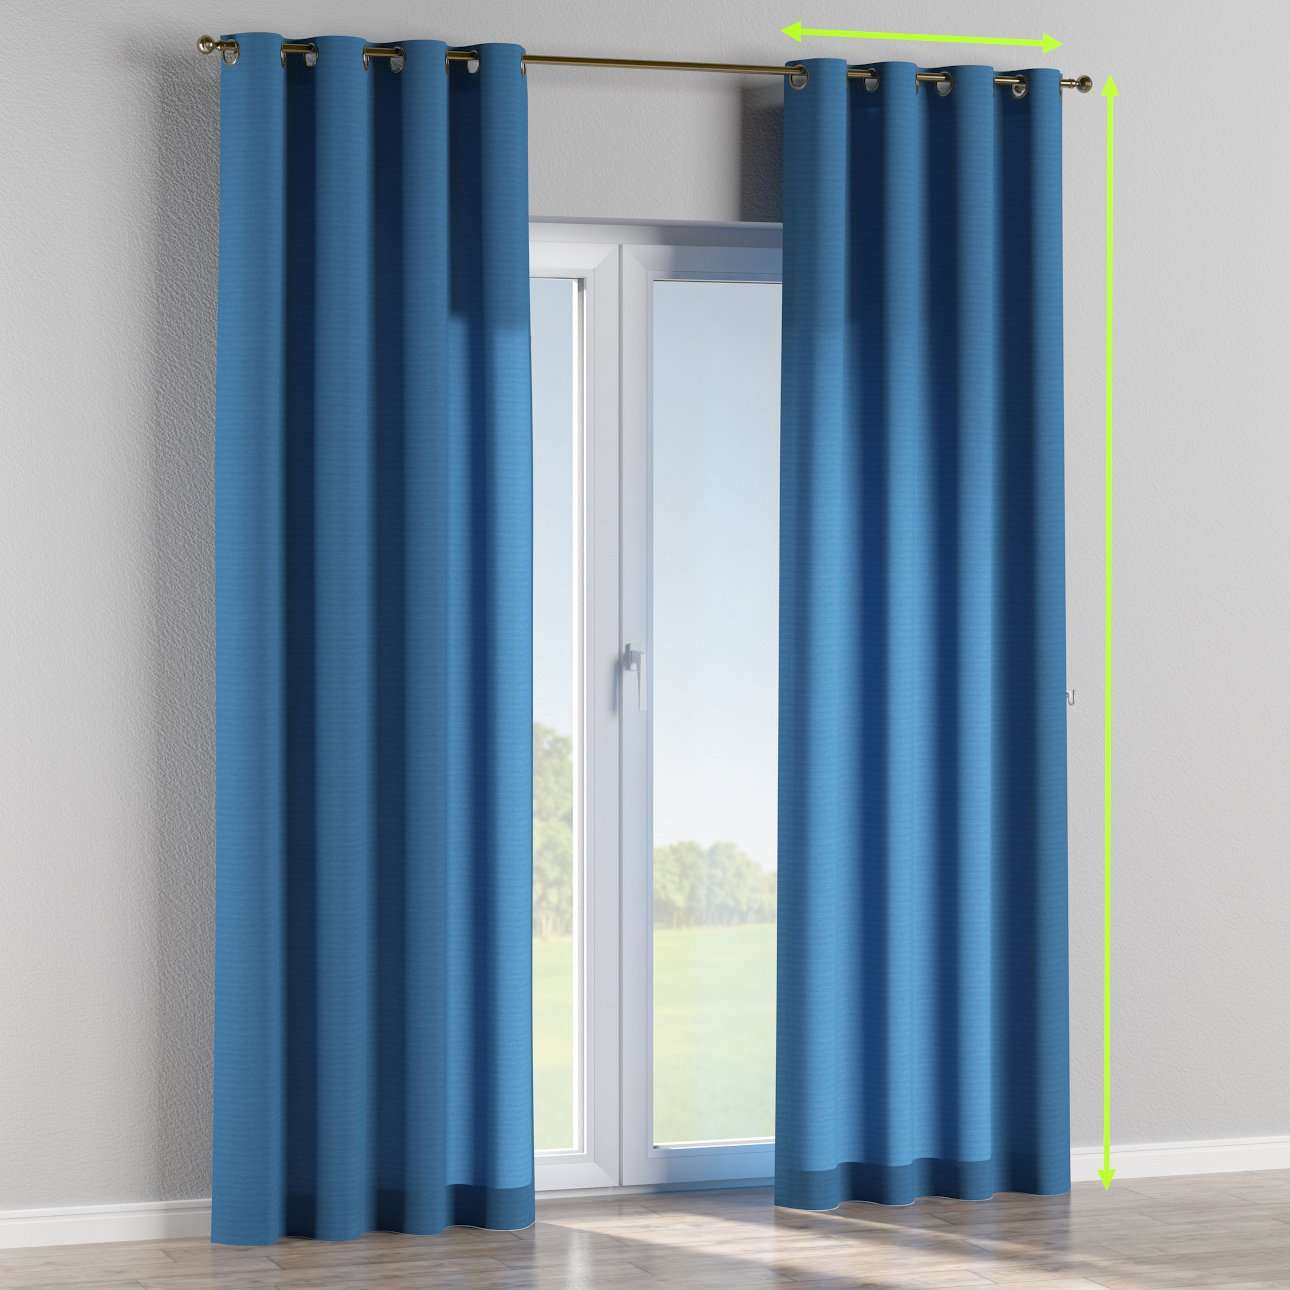 Eyelet curtain in collection Jupiter, fabric: 127-61